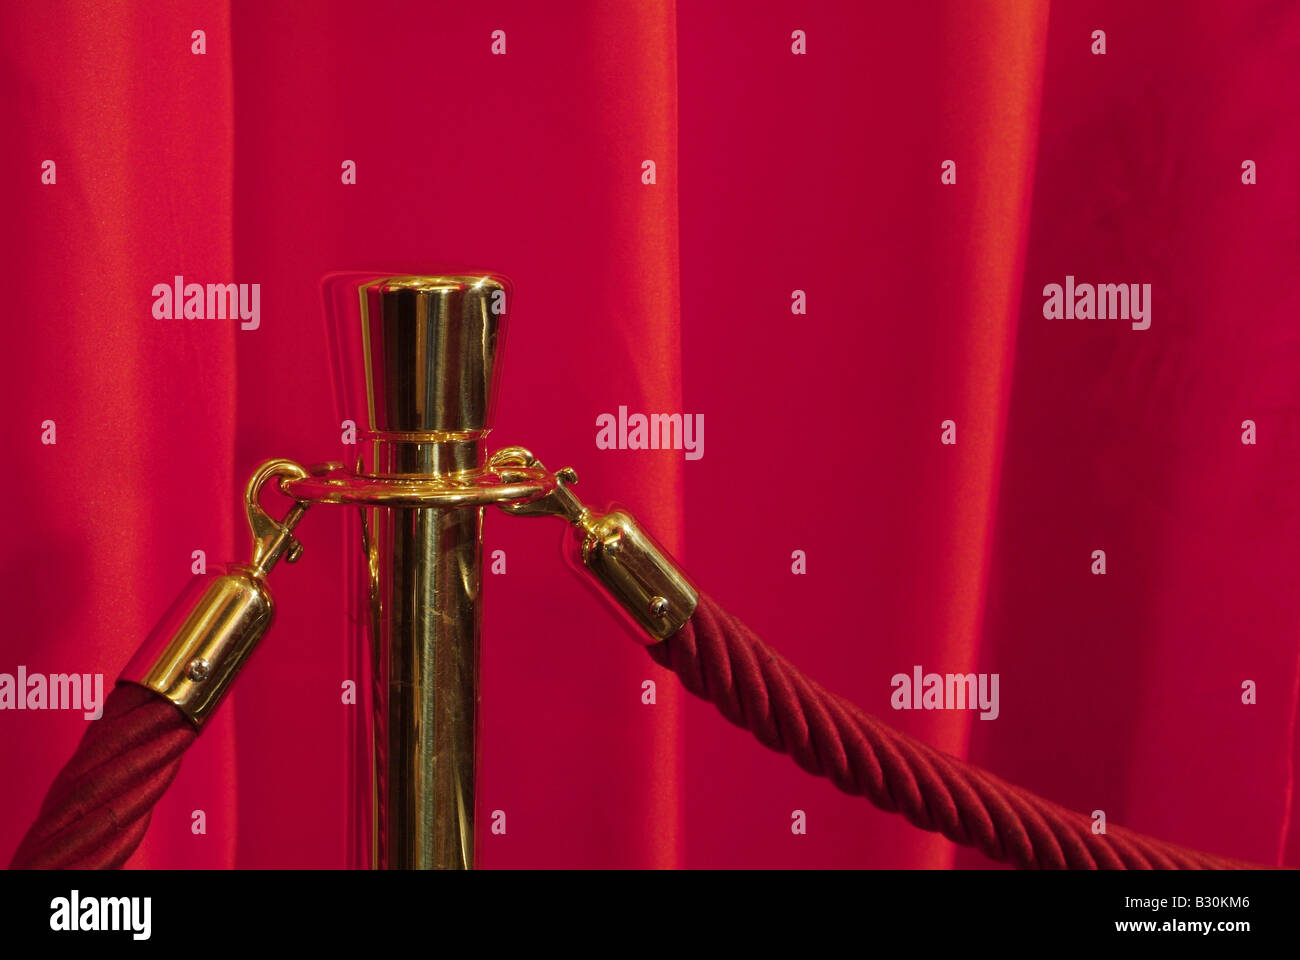 Red cords on a gilded pole - Stock Image